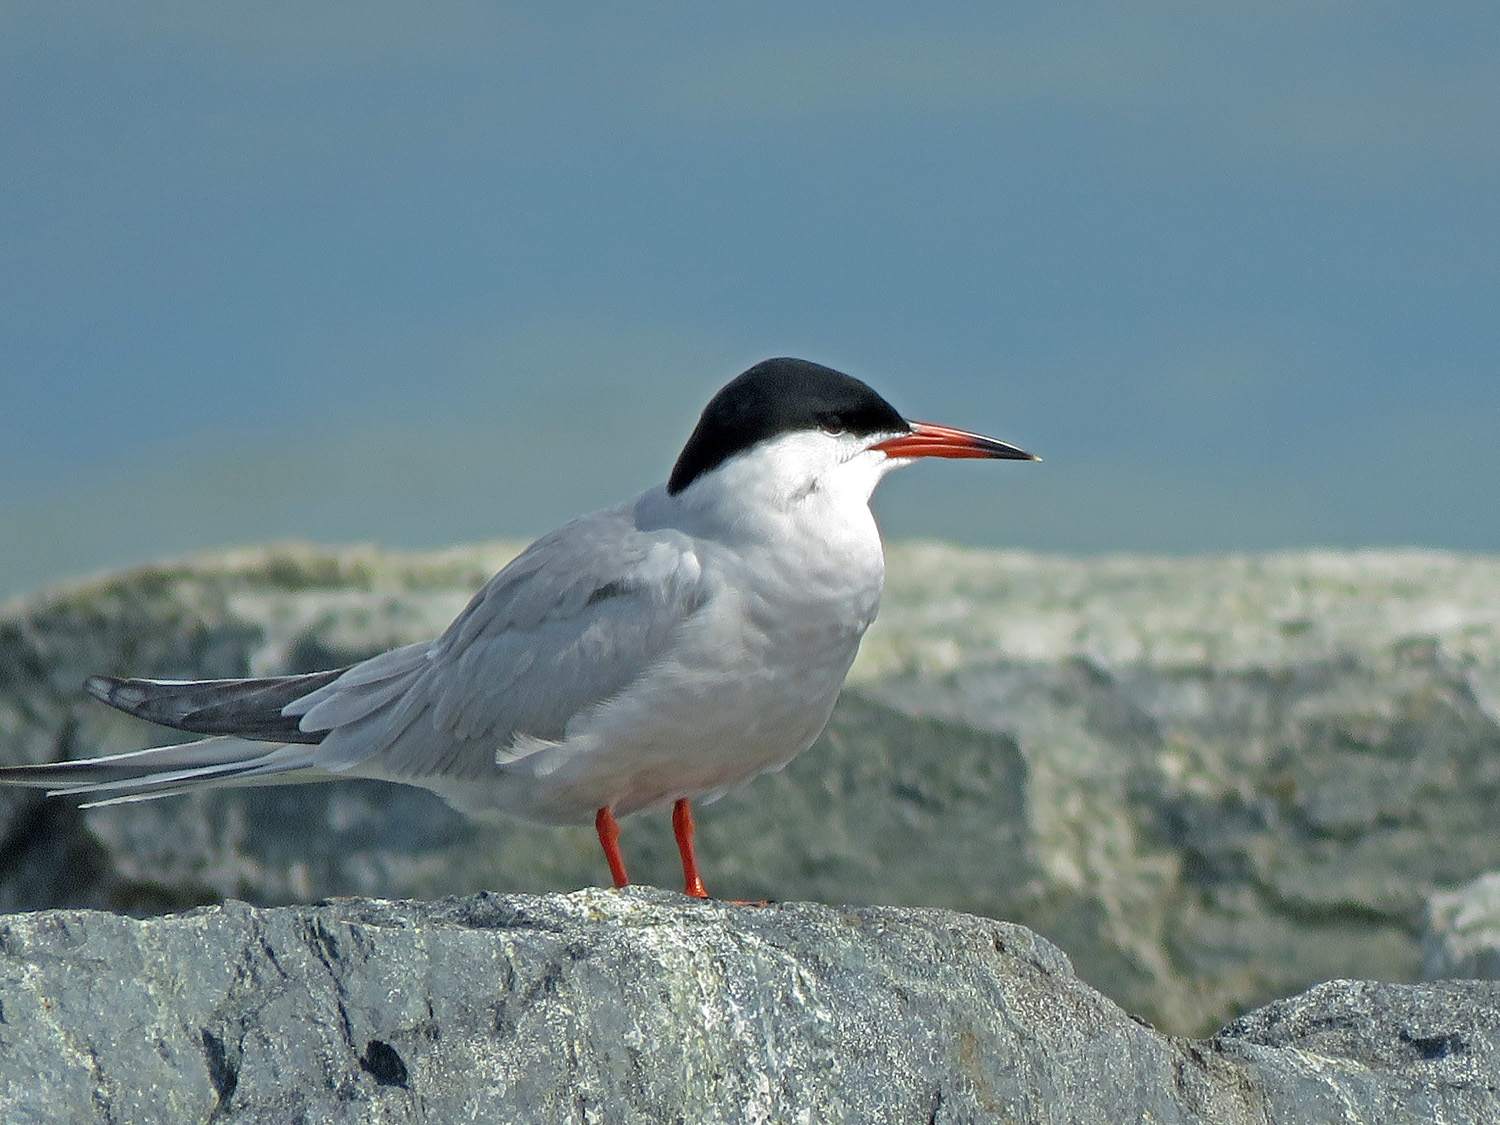 Common tern, Nickerson Beach, May 17, 2019. He and his buddies would have loved to take my Yankees cap or peck my eyes out!